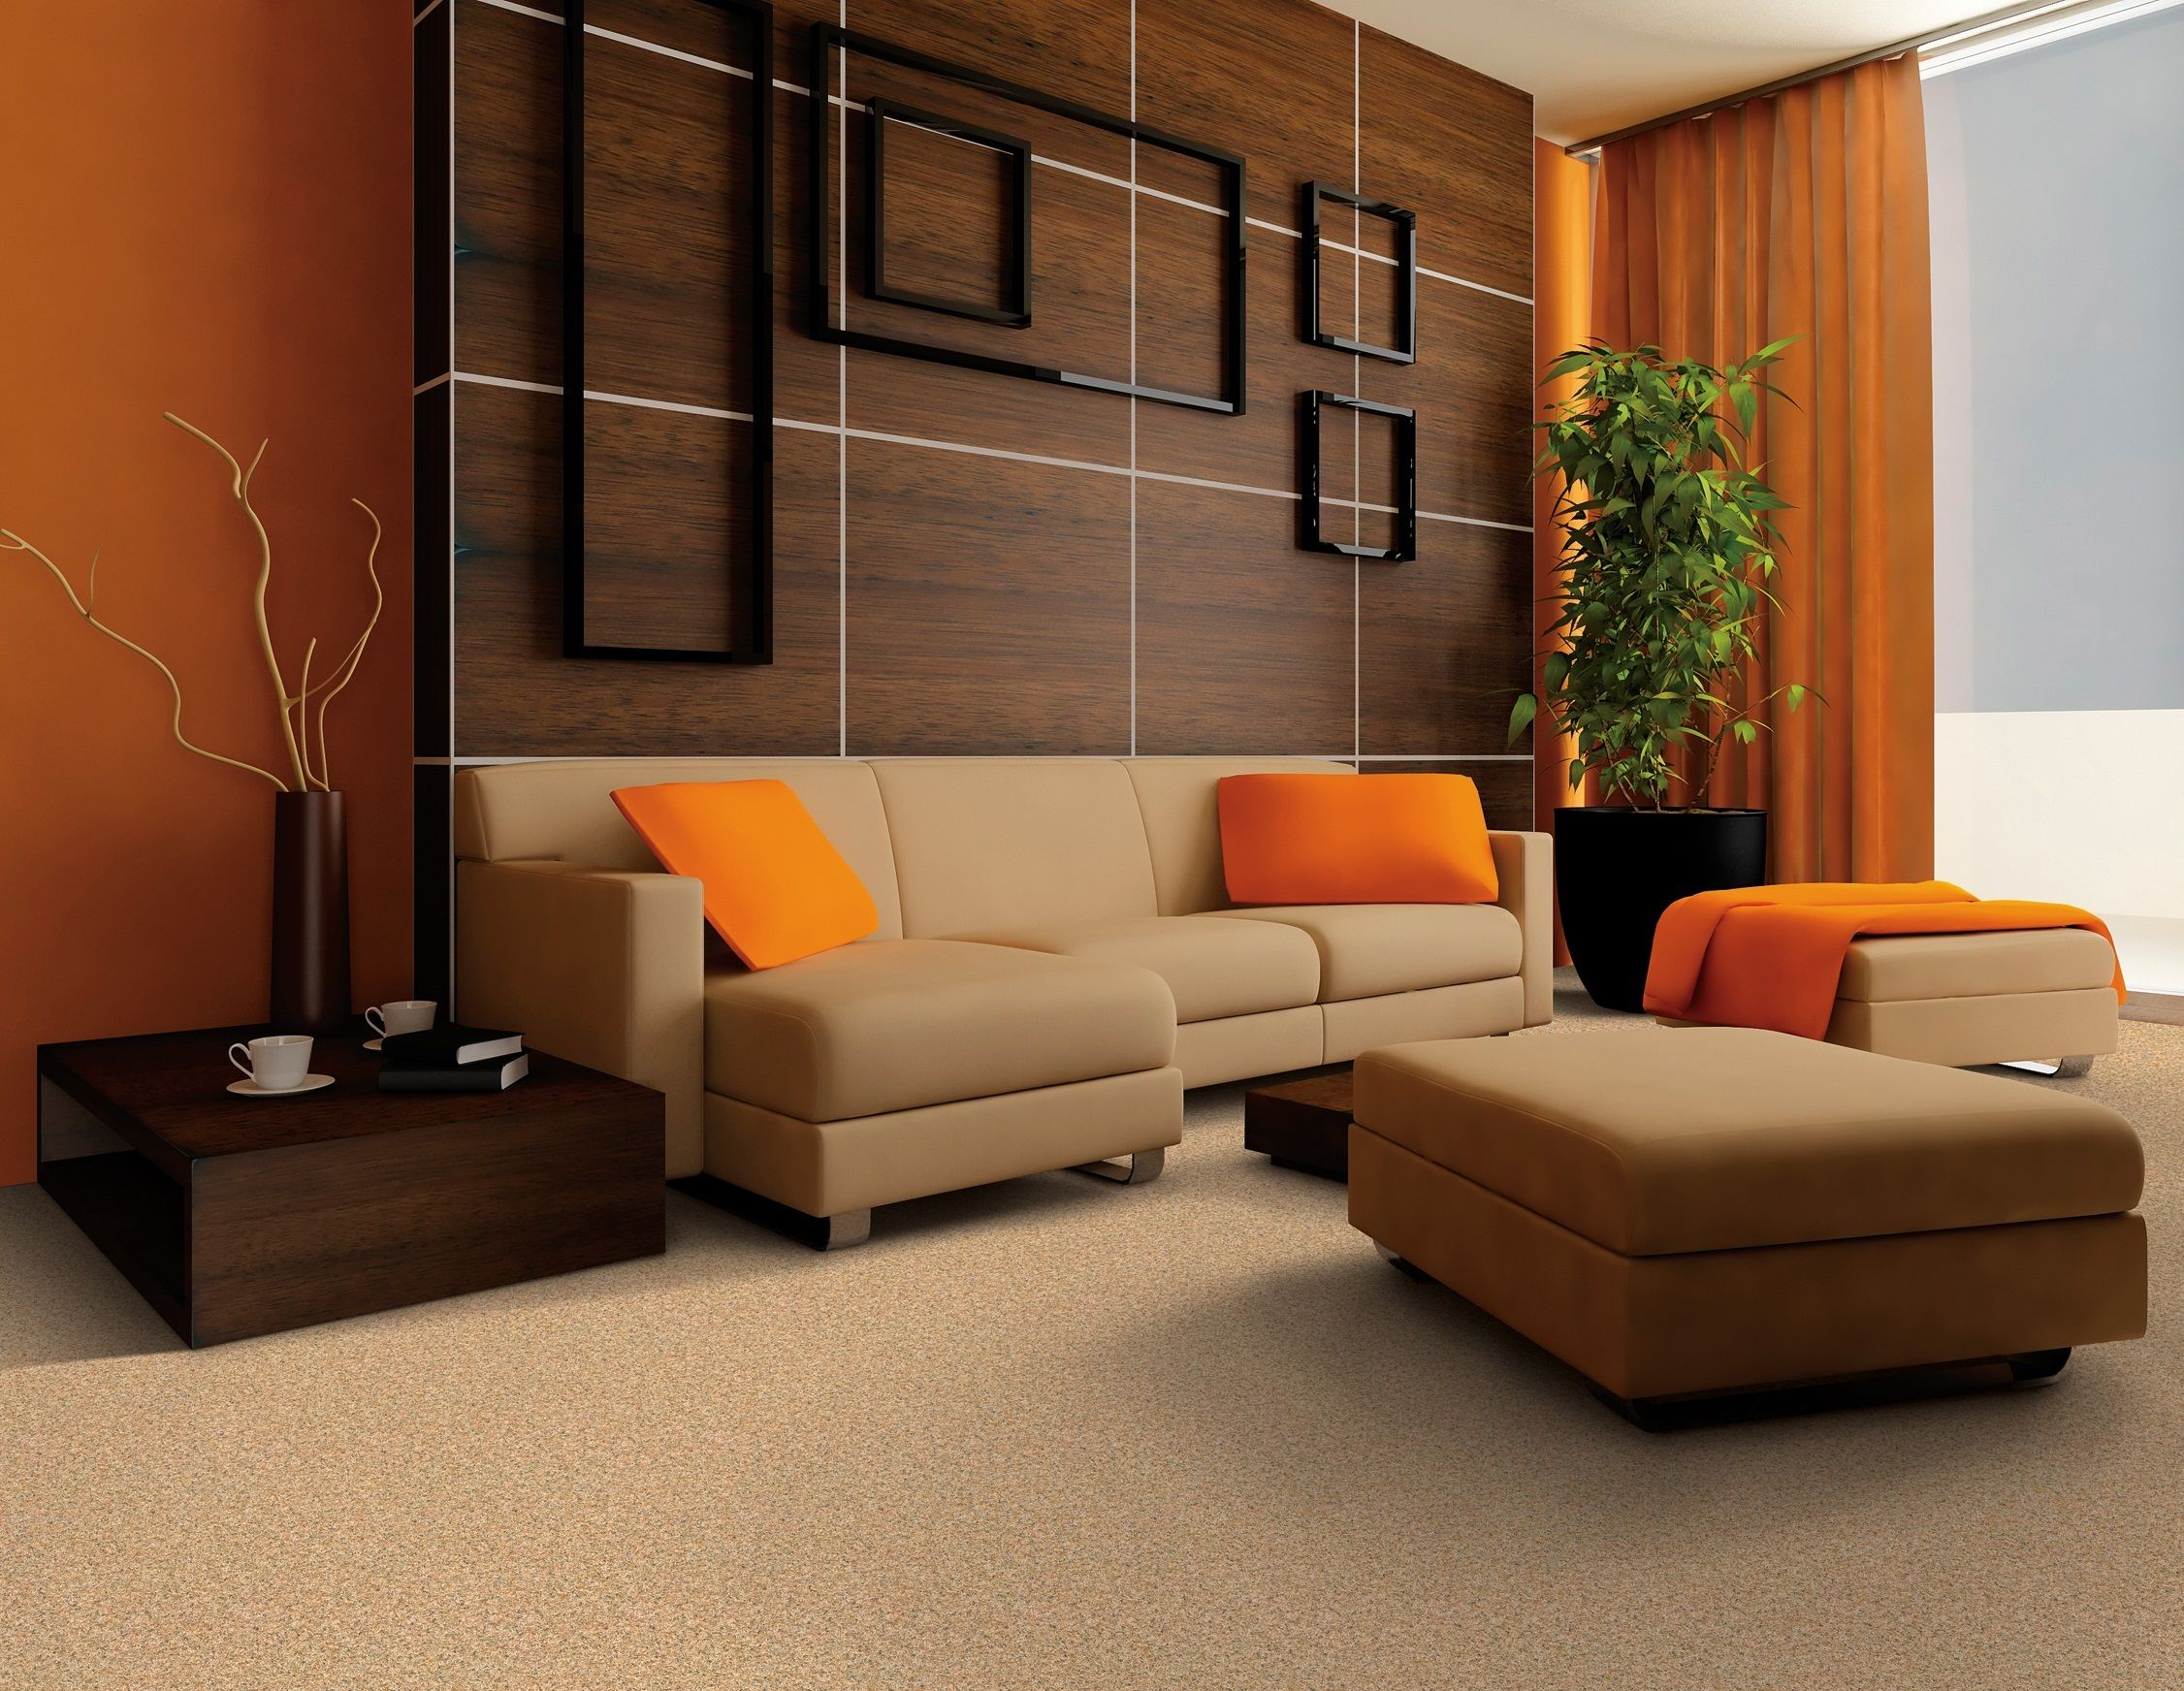 Bedroom Paint Ideas Orange warm color wall paint and brown shades sofa design ideas for